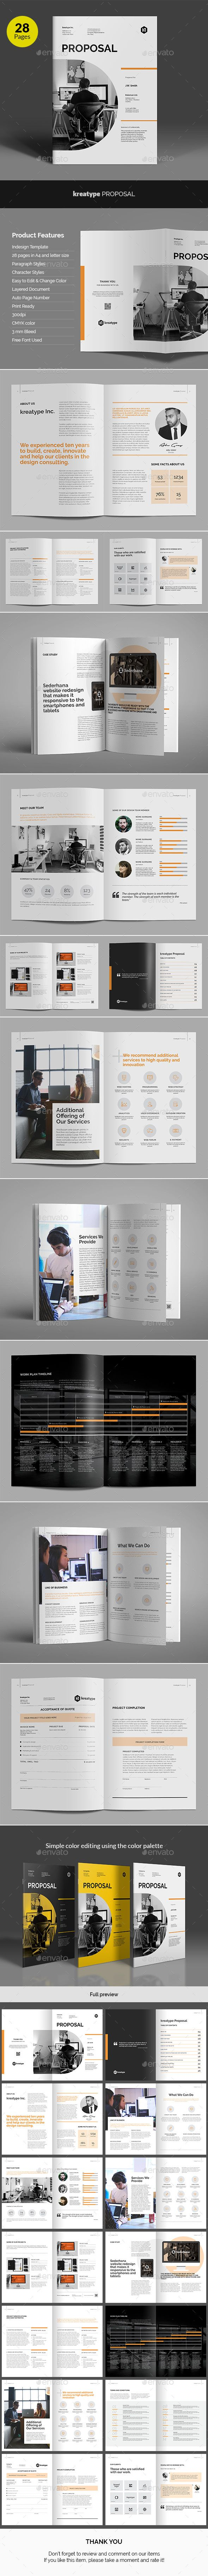 Kreatype Business Proposal Template InDesign INDD. Download here: https://graphicriver.net/item/kreatype-business-proposal-v03/17263548?ref=ksioks